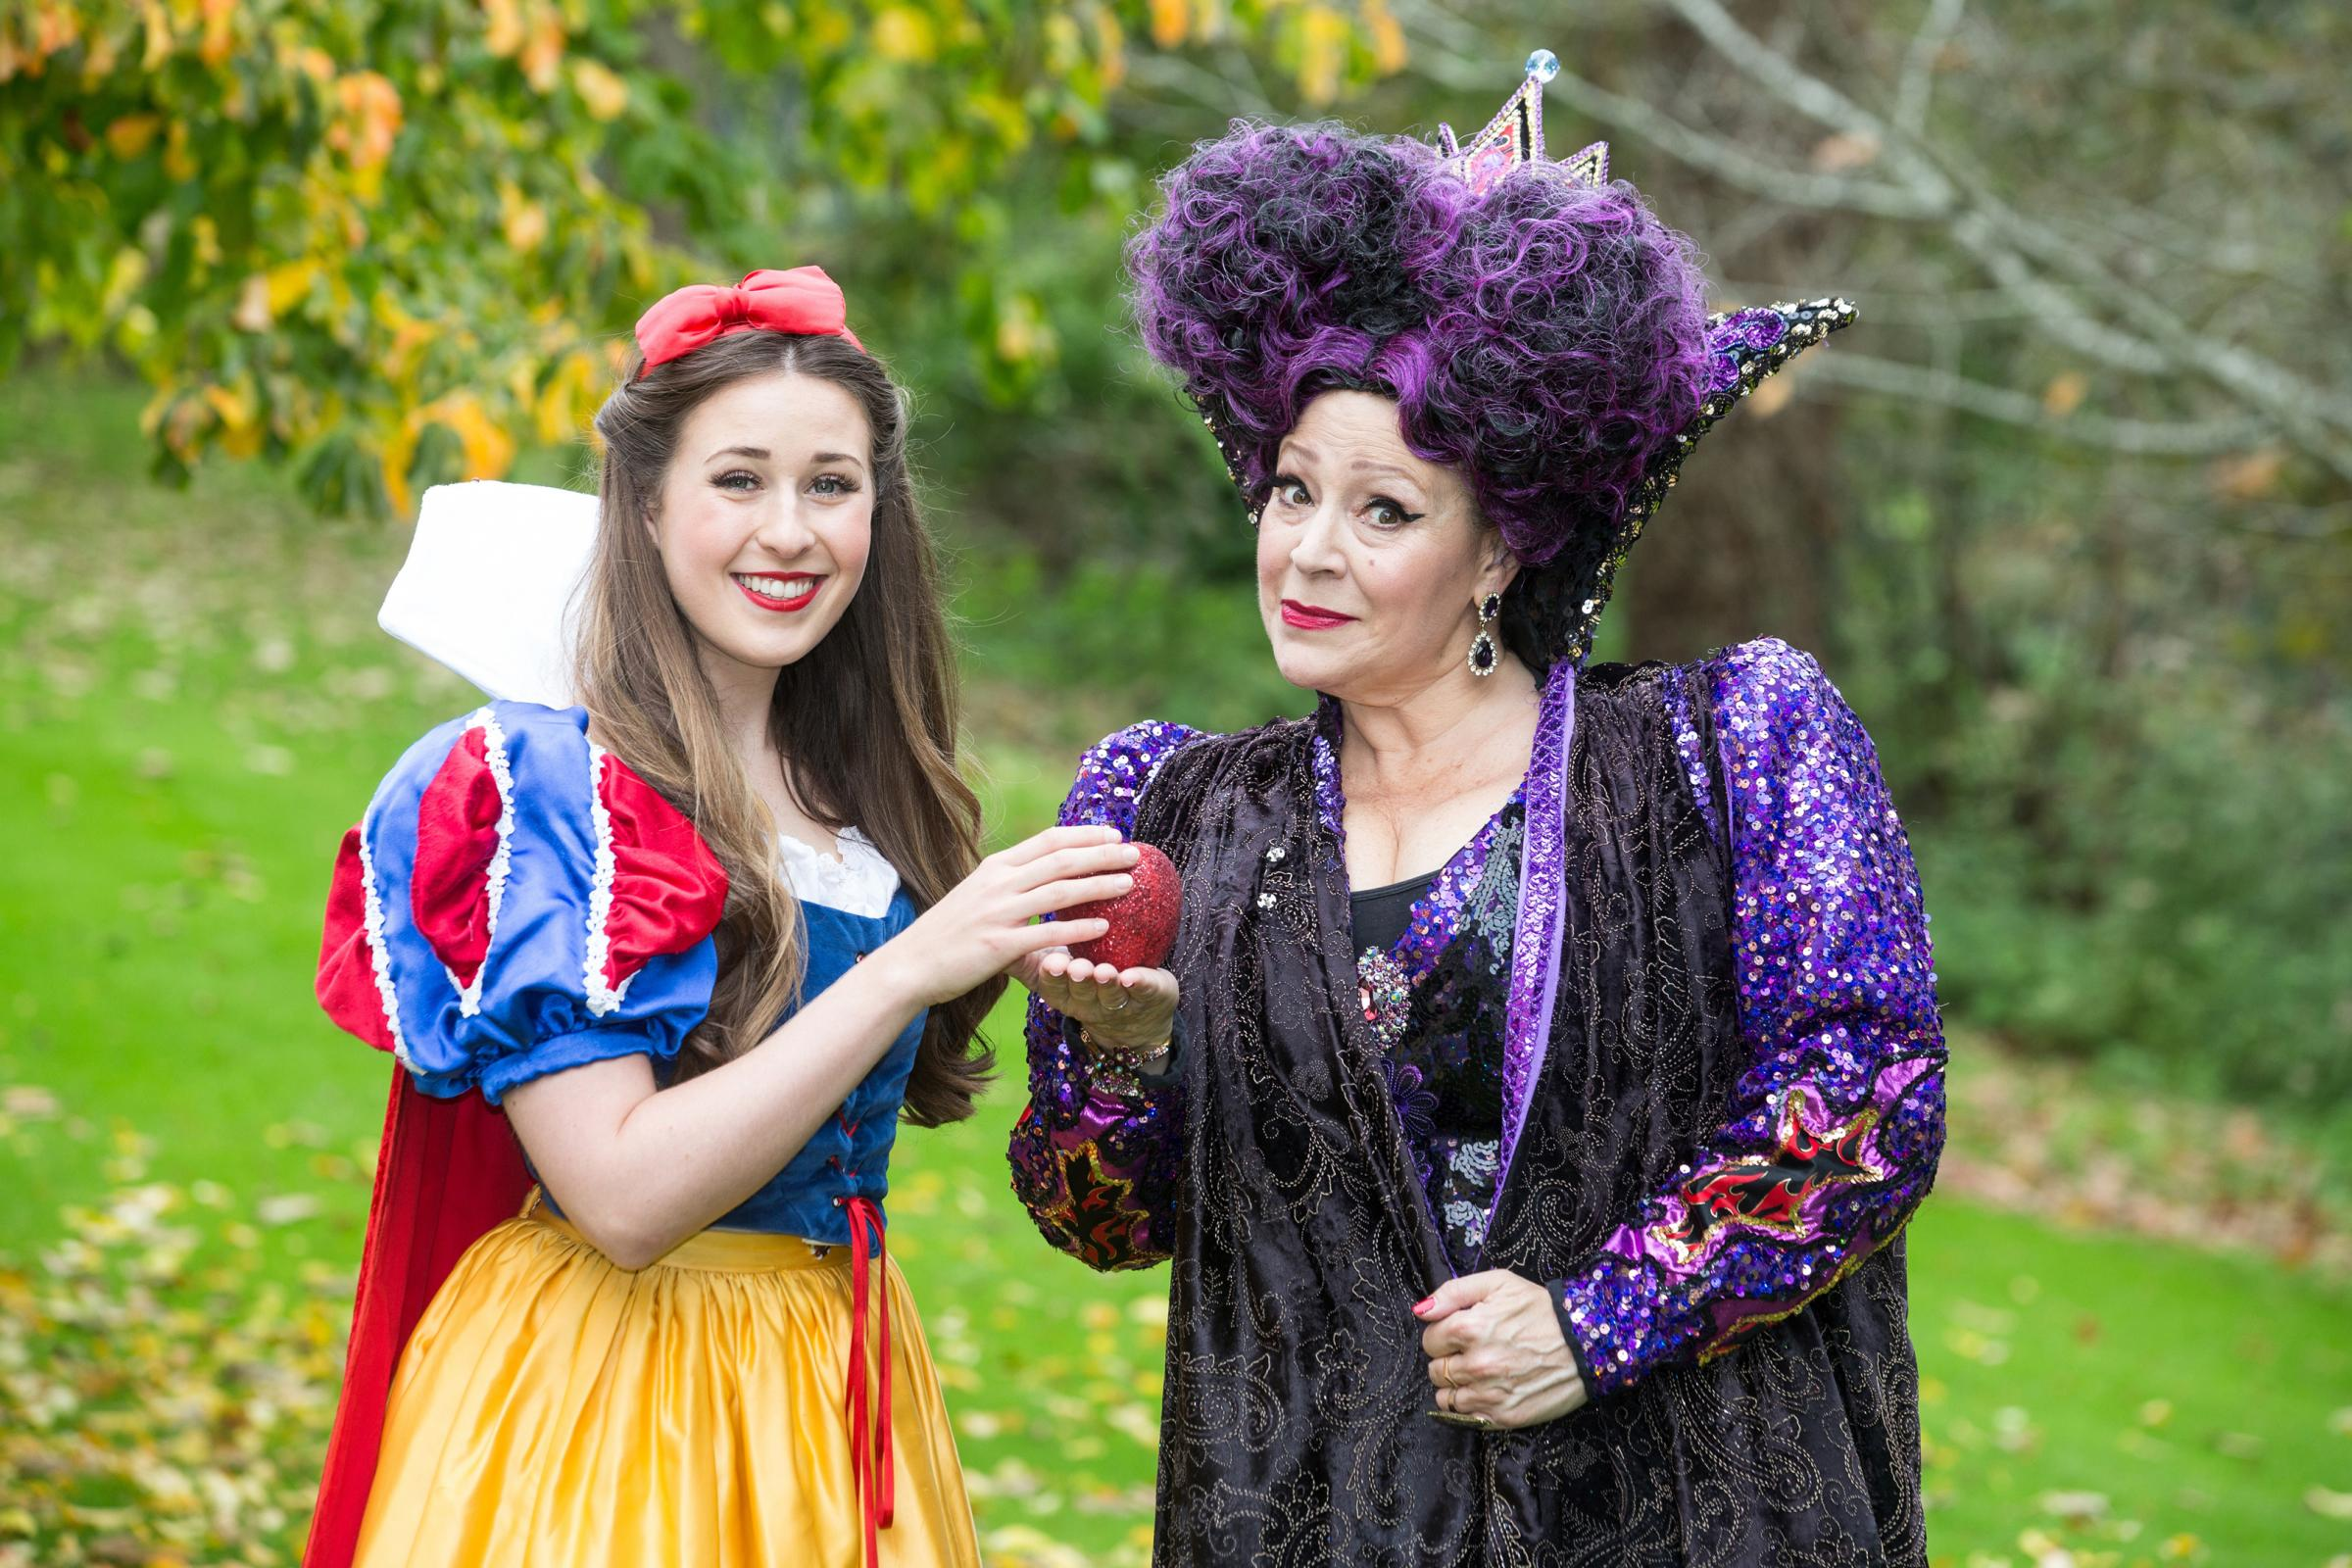 Snow White and The Seven Dwarfs on at the Theatre Royal Bath until January 7. Pictured, Devon Elise Johnson as Snow White and Harriet Thorpe as the Wicked Queen. Photo: Frela Turland.